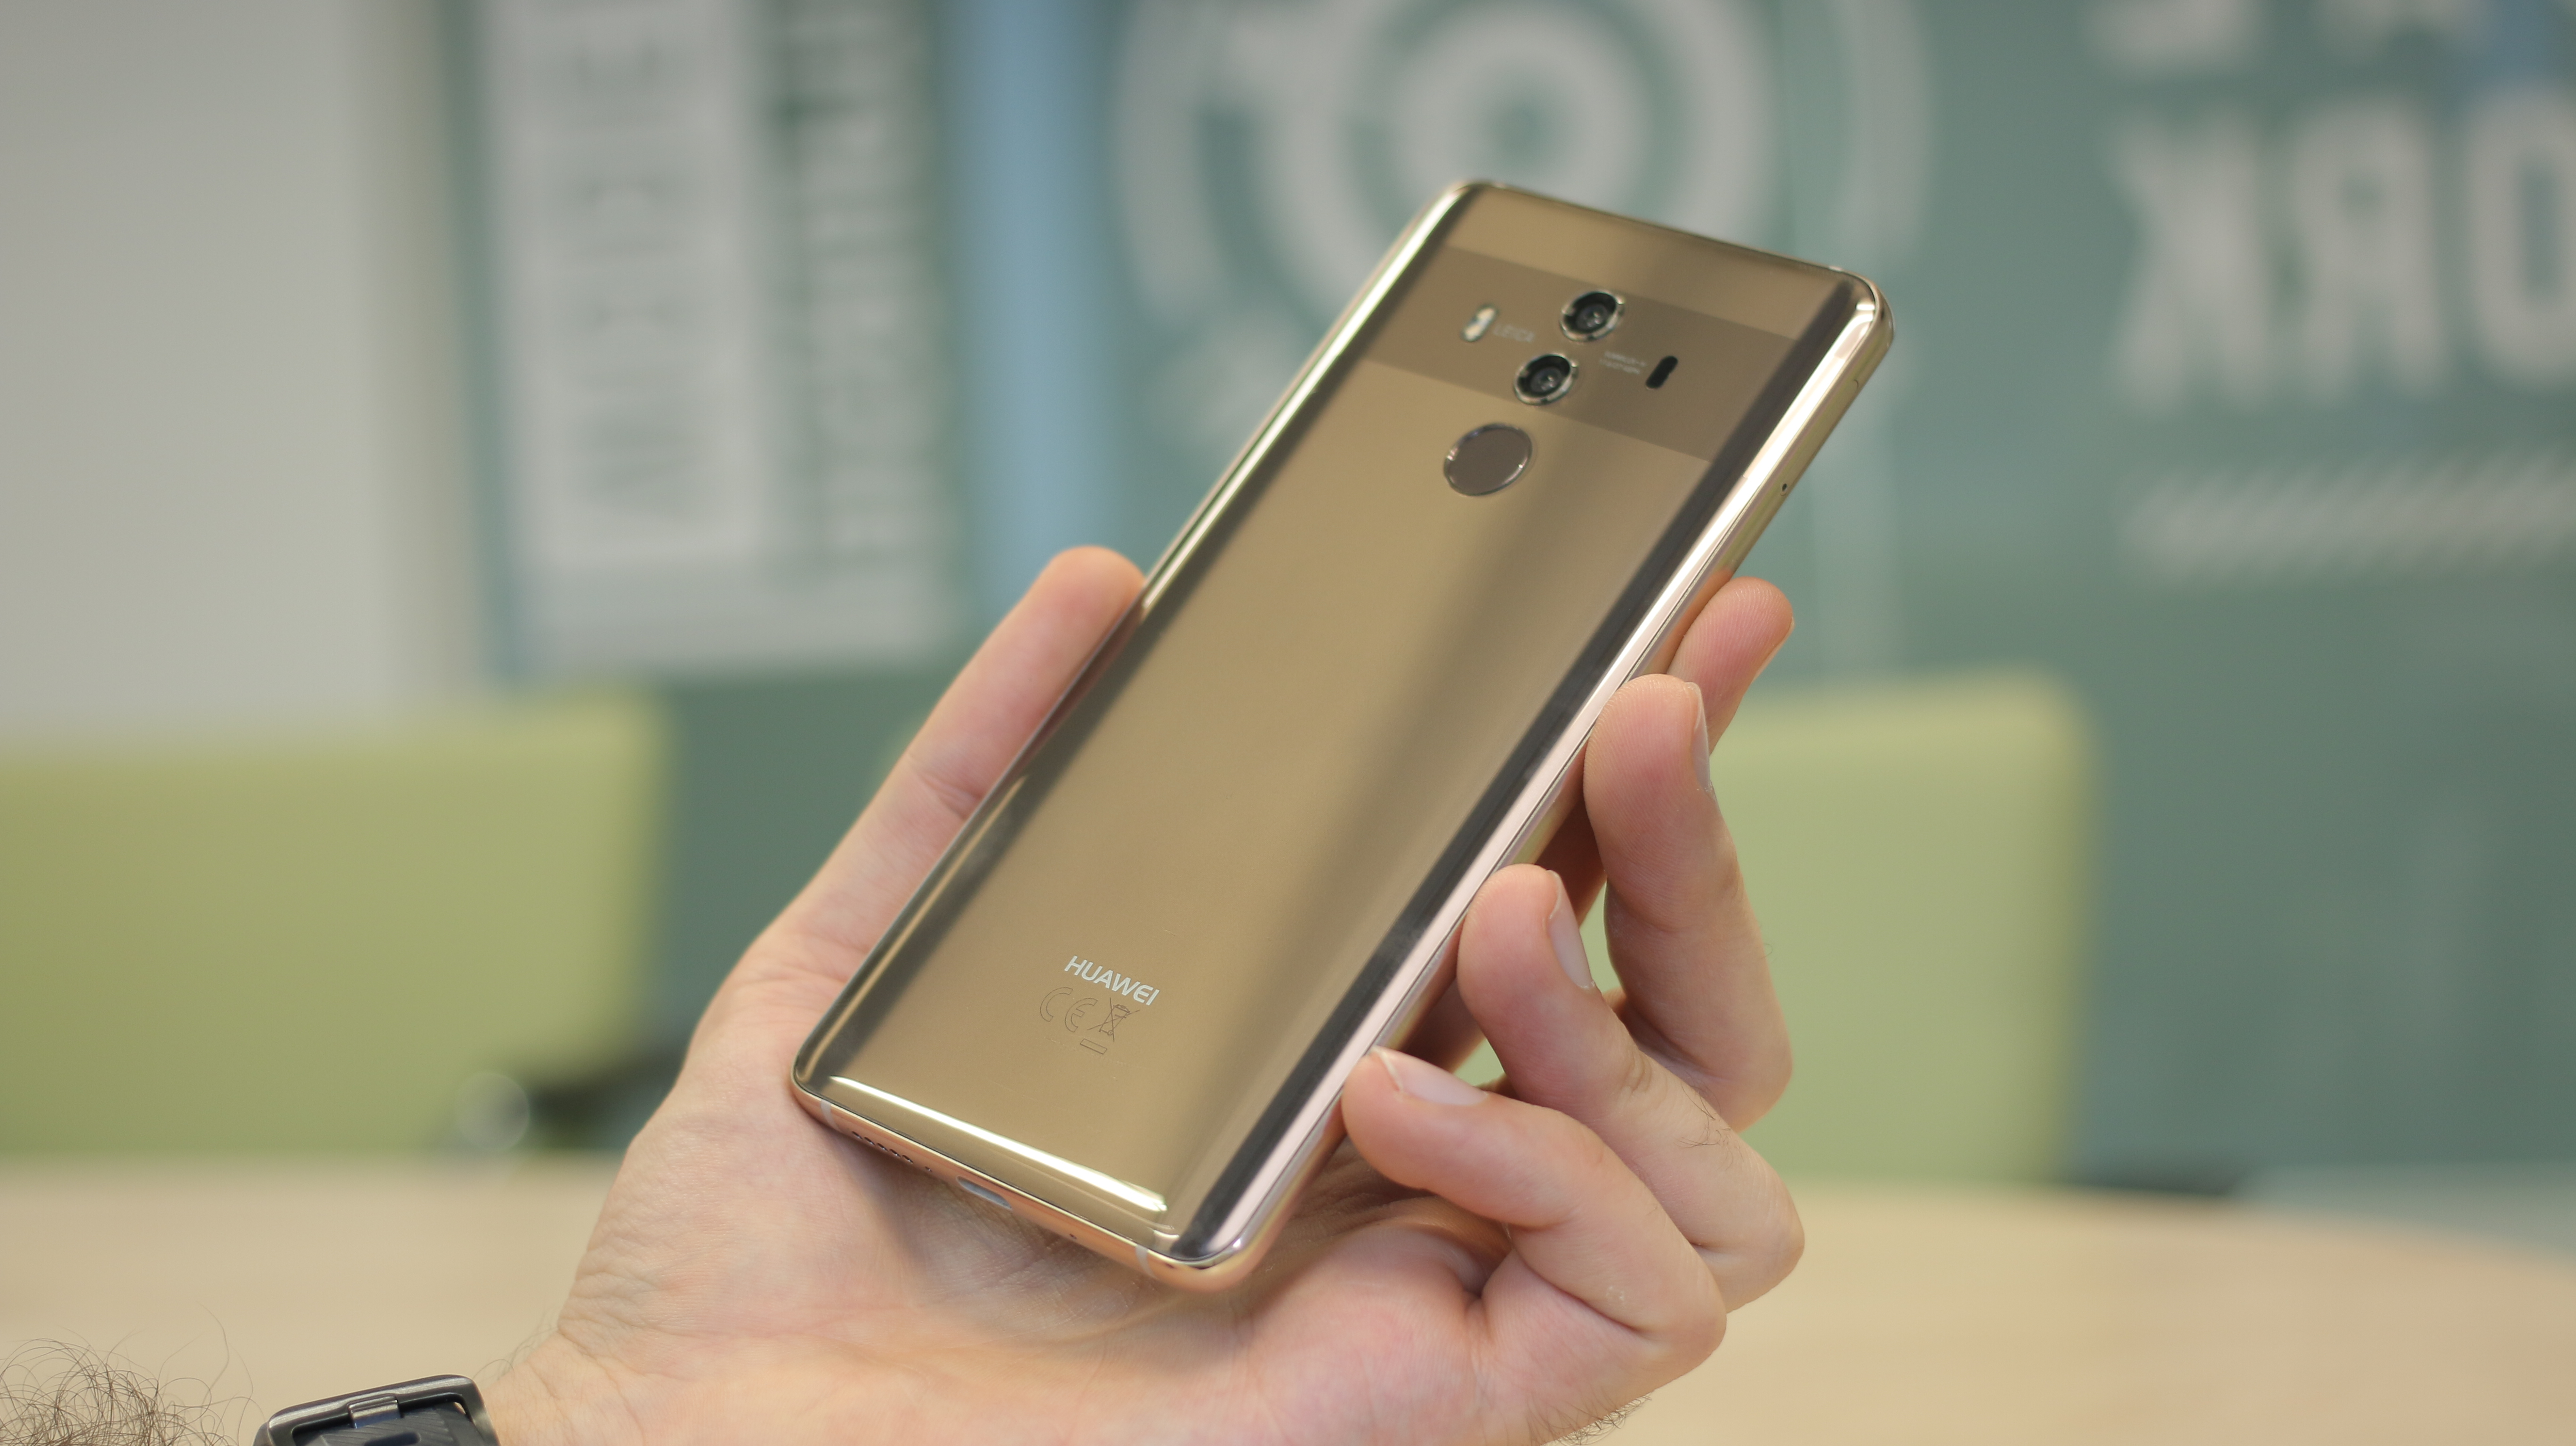 Huawei Mate 10 Pro release date, news and features - 2017